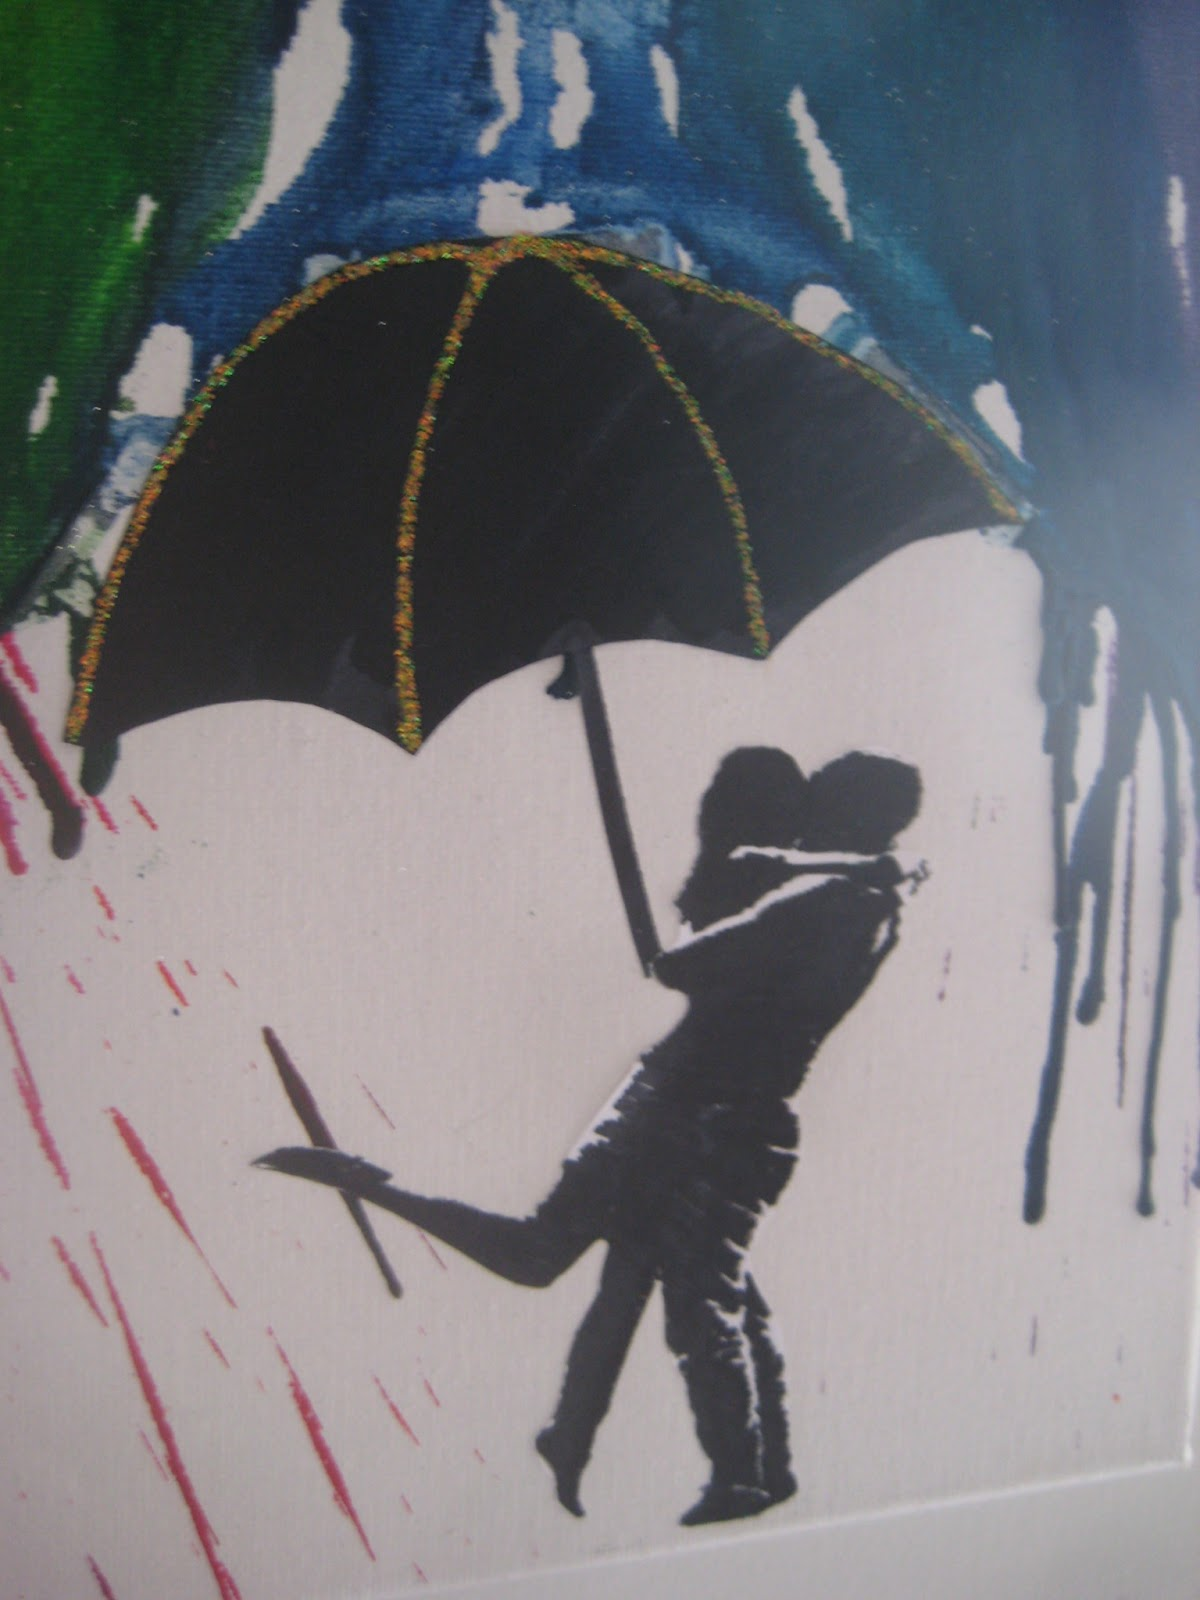 Couple Kissing Silhouette Umbrella I wanted a silhouette photo Couple Silhouette Umbrella Crayon Art